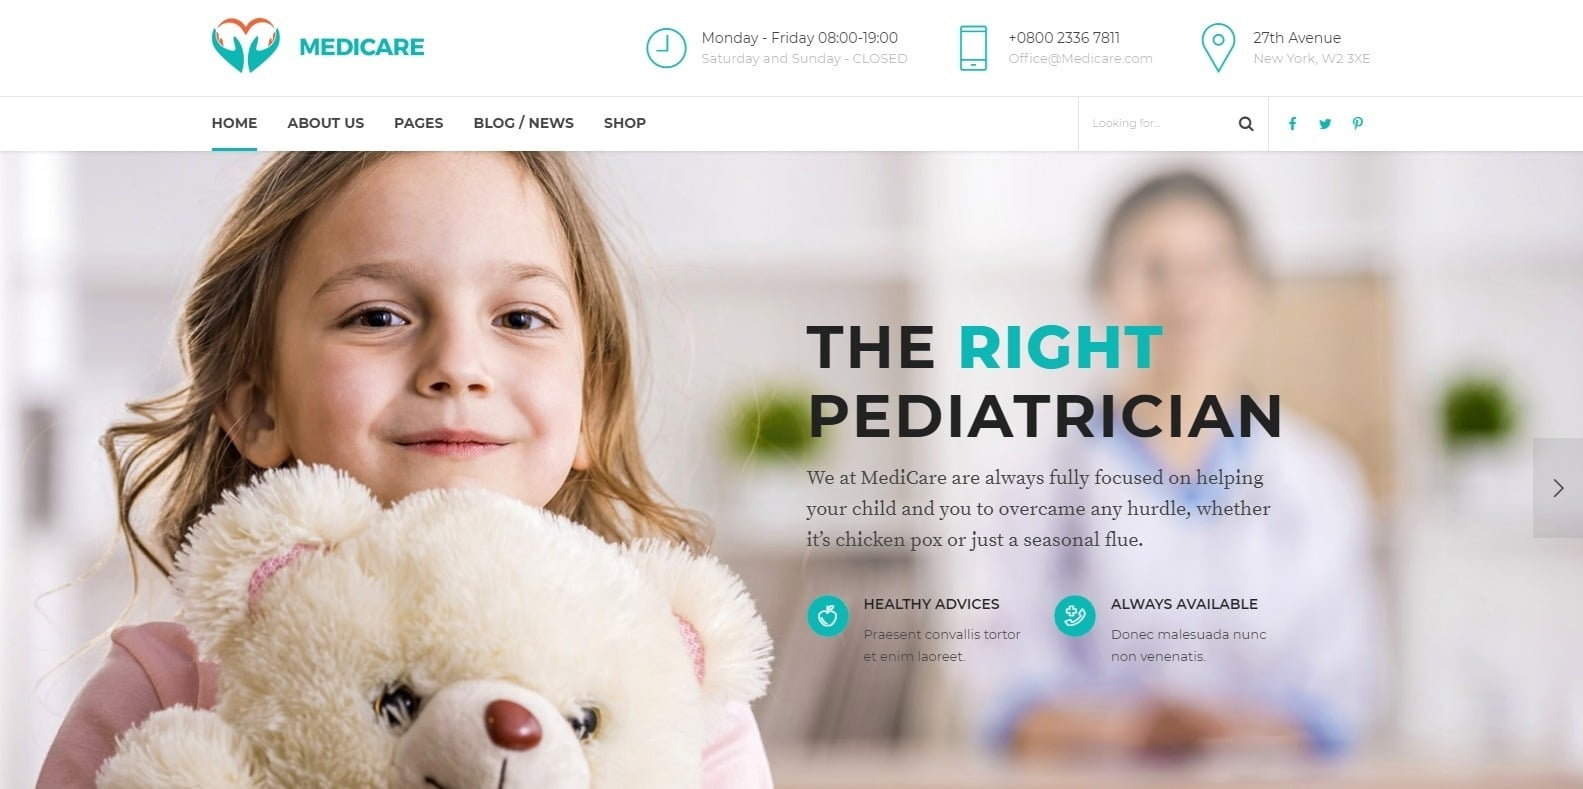 medicare-clinic-medical-website-template